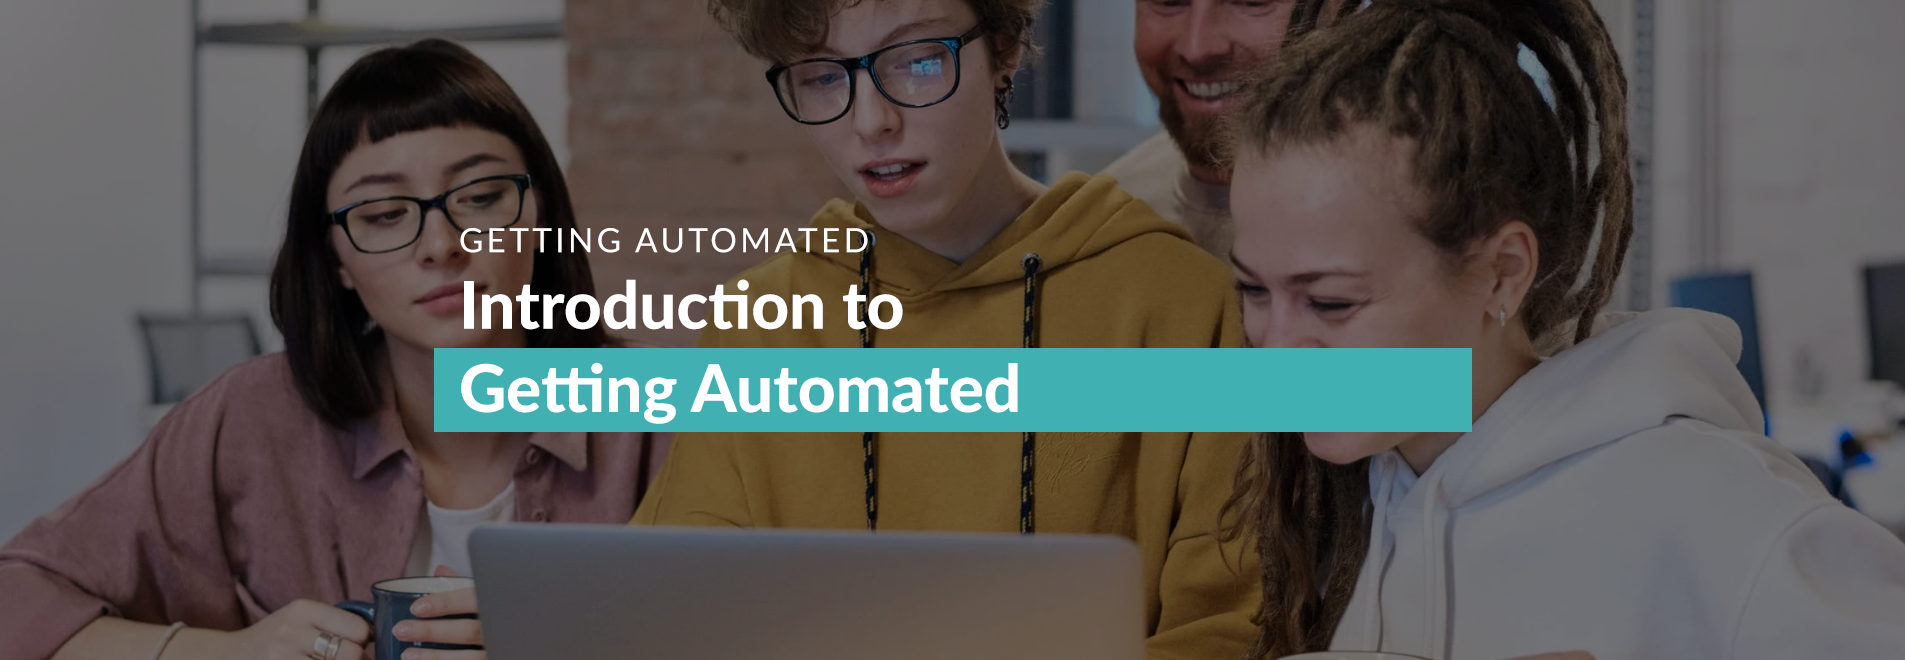 GET AUTOMATED: Setting your operations on auto-pilot with process automation